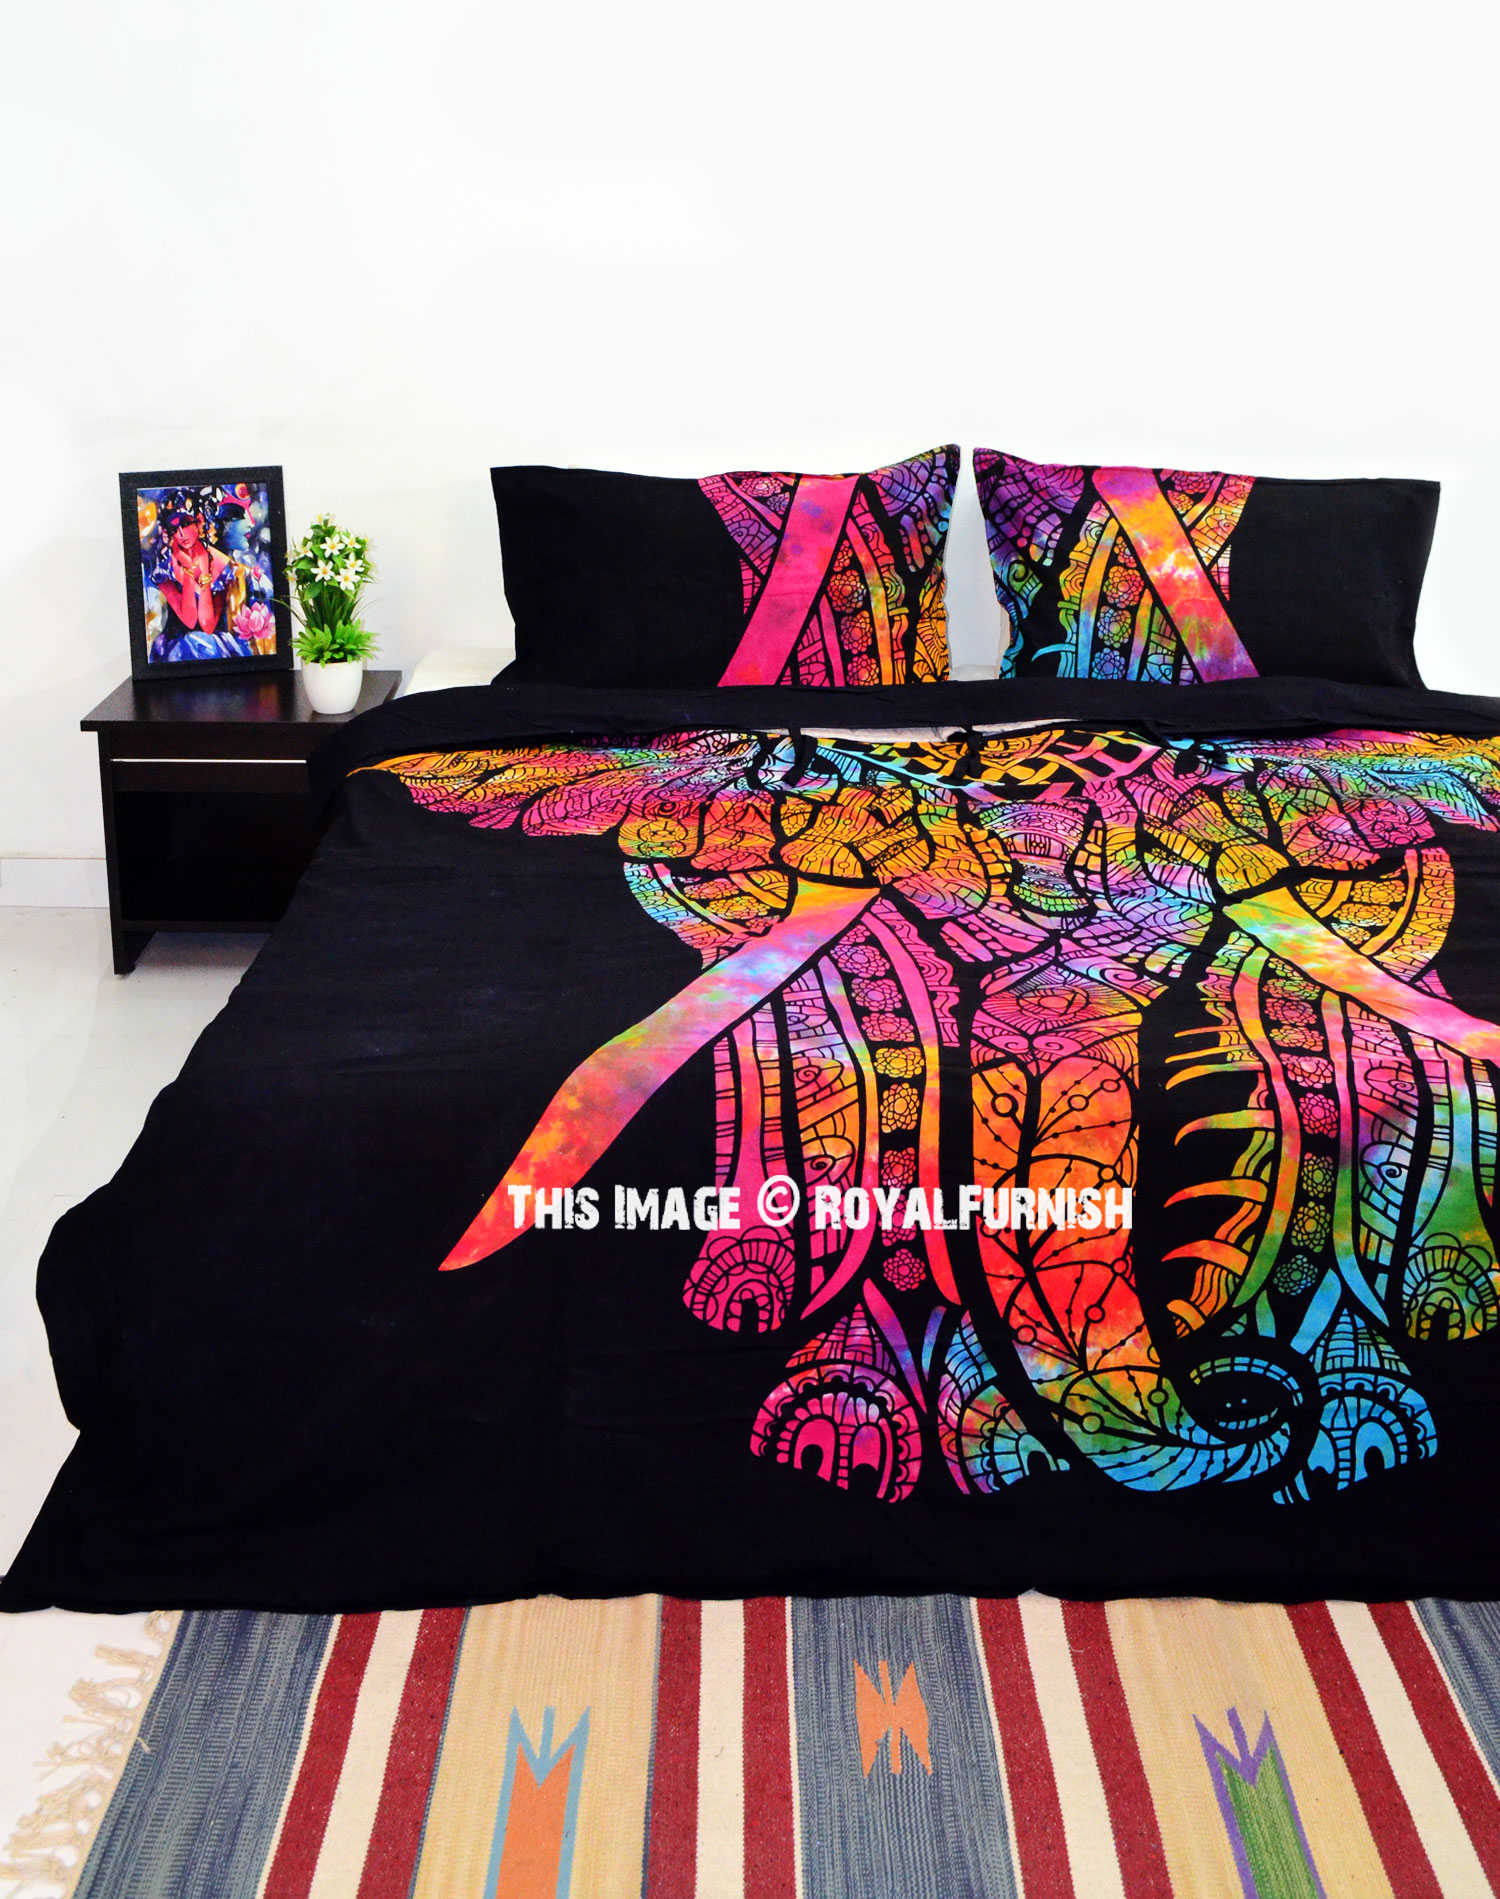 Black Tie Dye Asian Elephant Duvet Cover Set With 2 Pillow Cover Royalfurnish Com